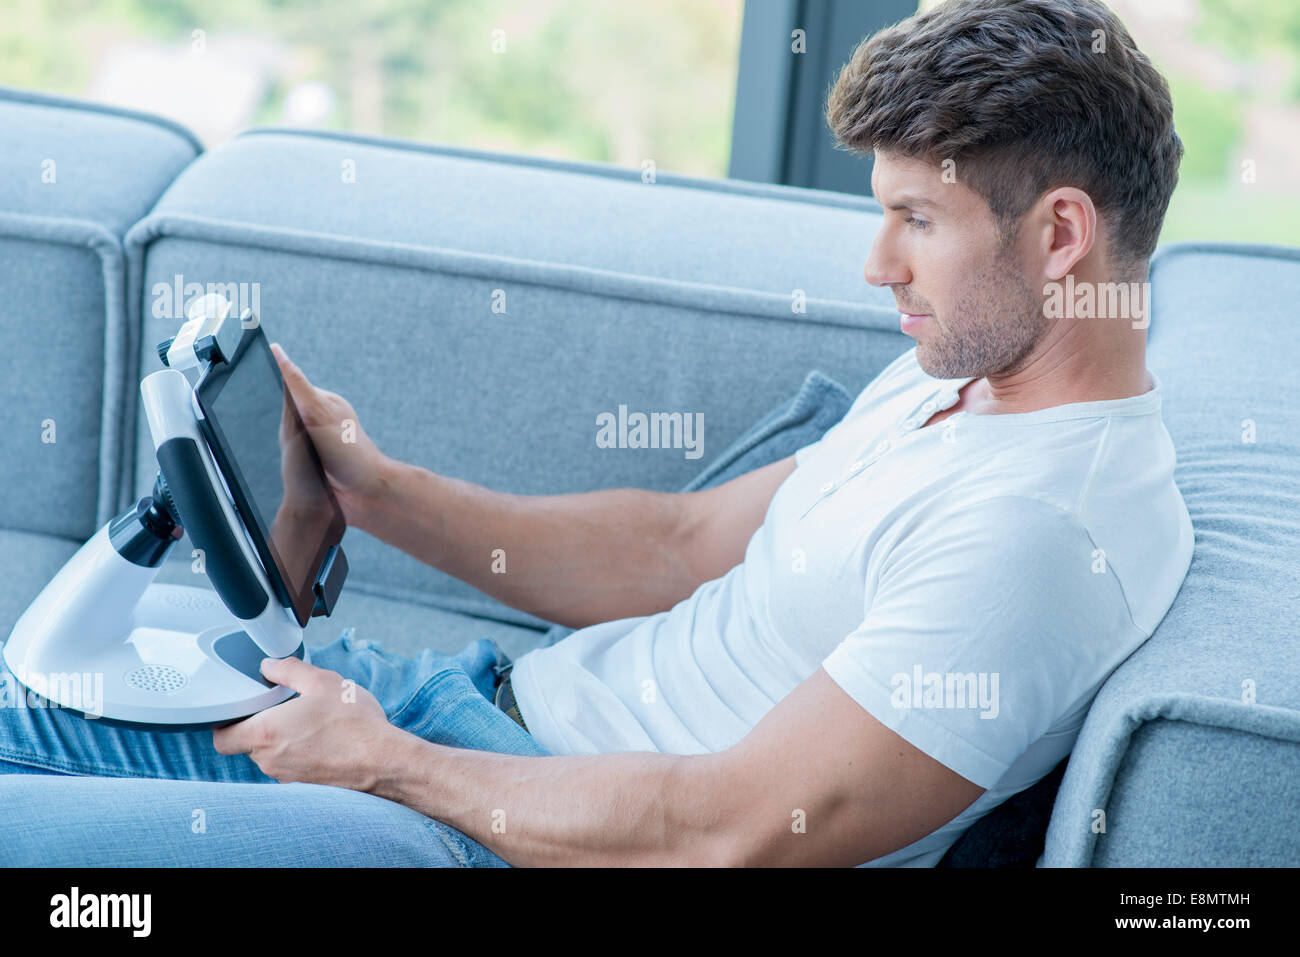 Young Handsome Man on Couch Playing His Gadget - Stock Image